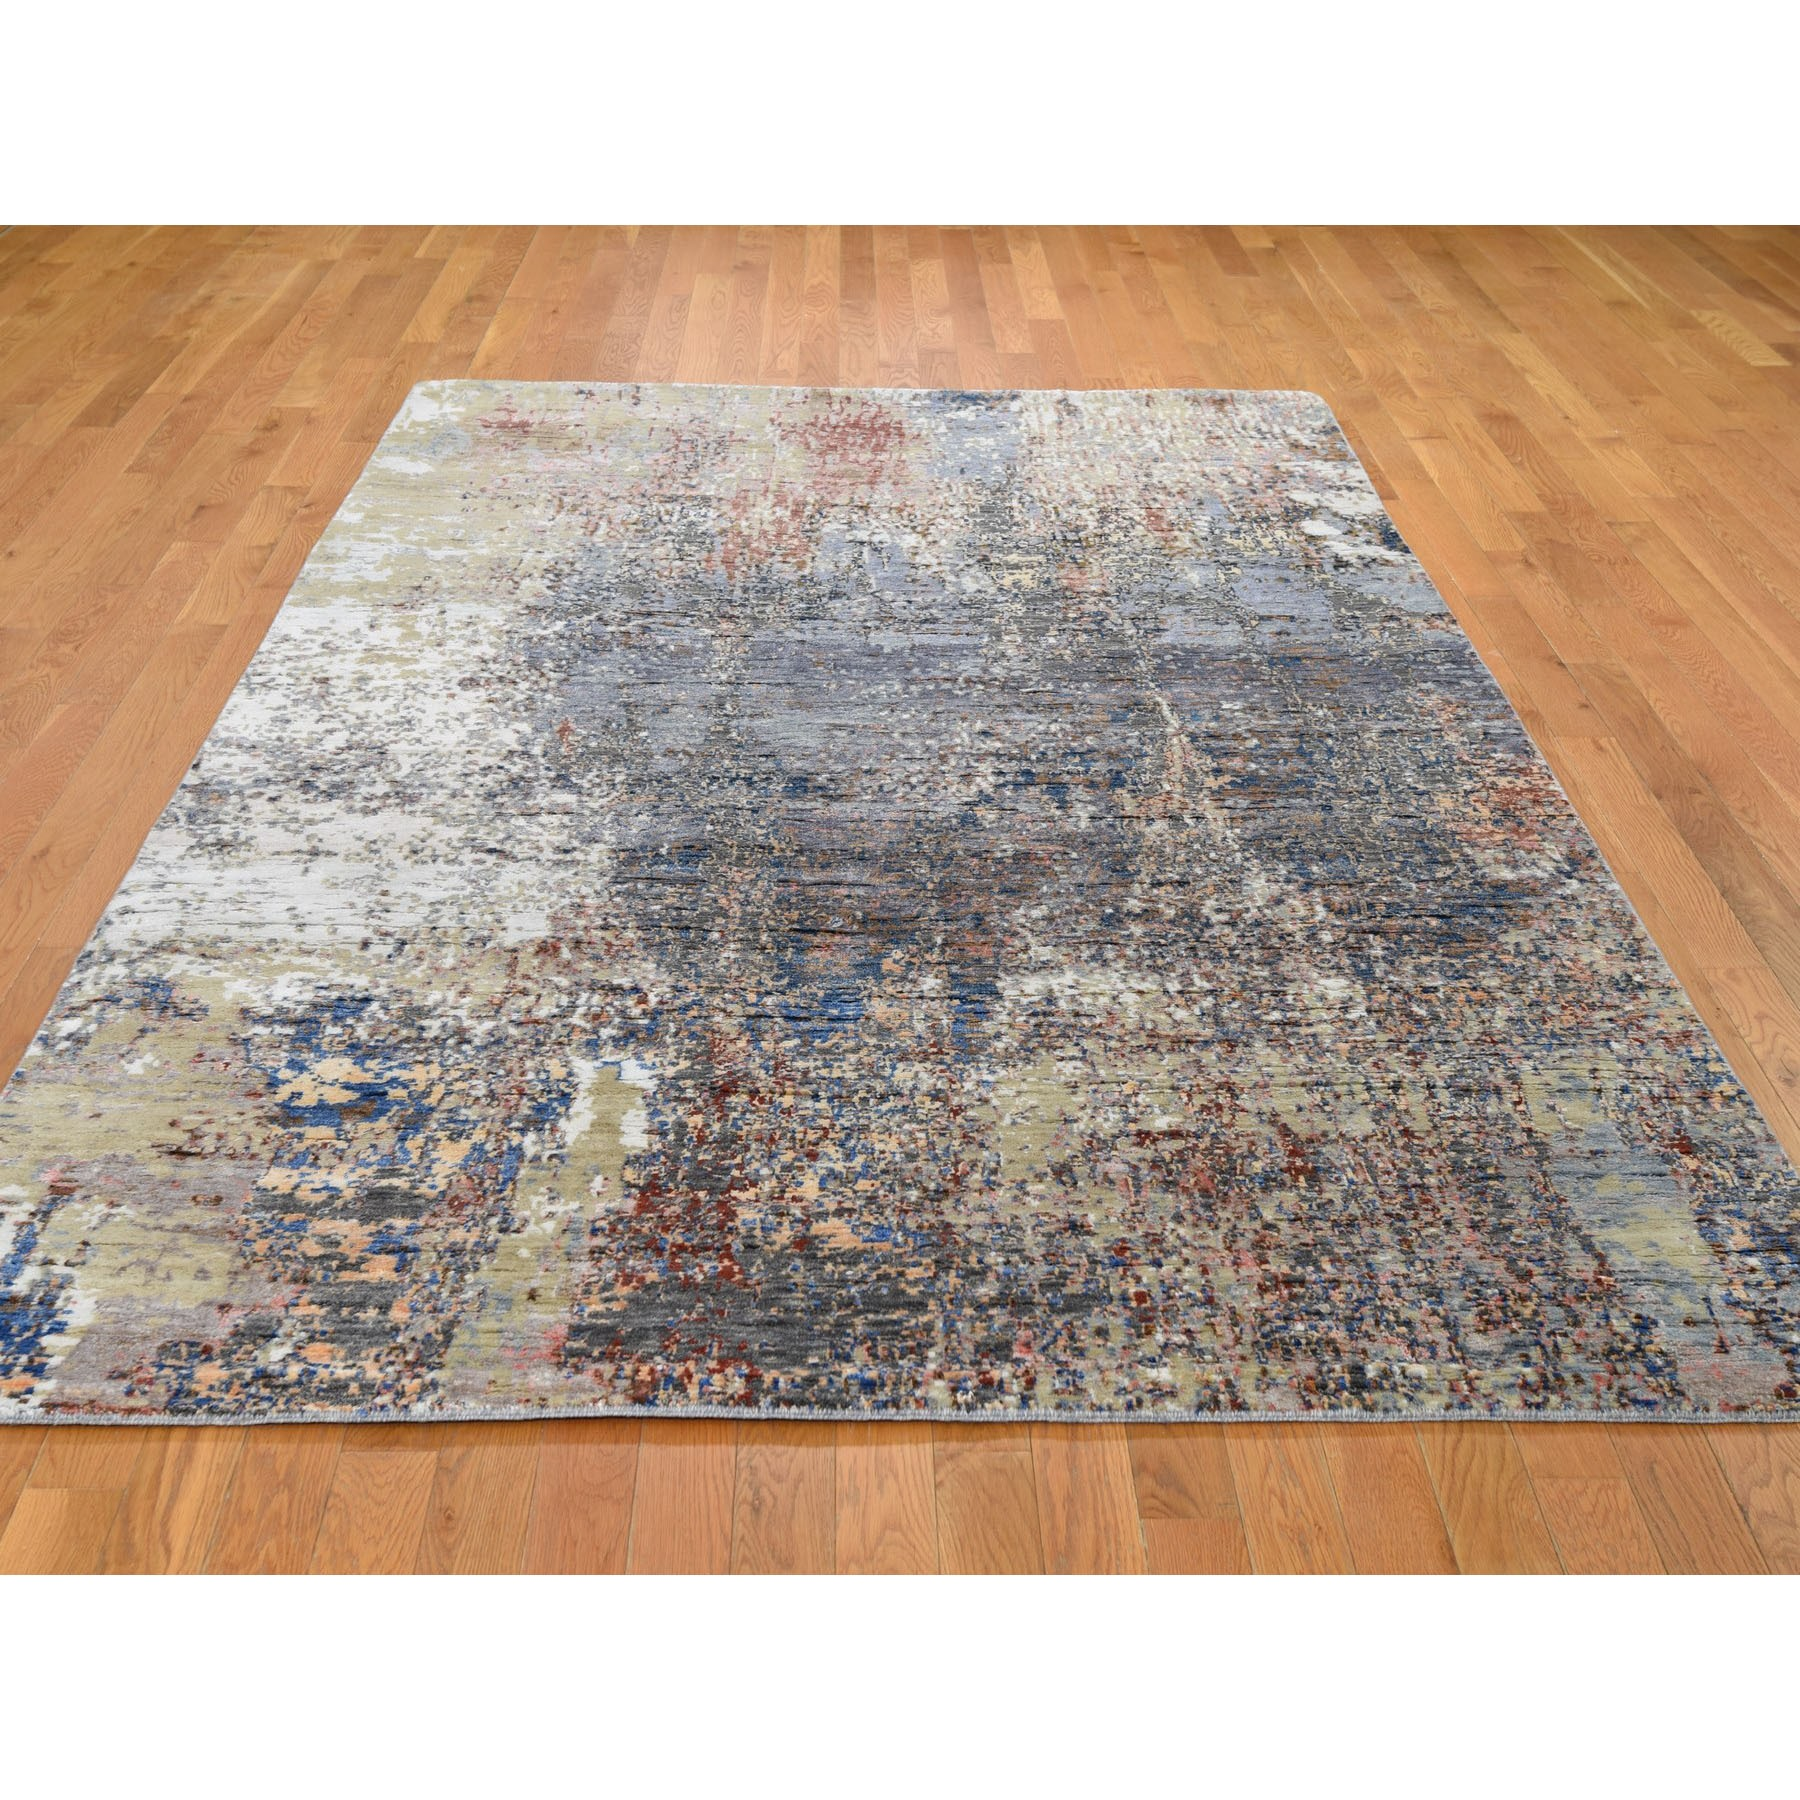 """6'x9'2"""" Wool And Silk Abstract Design Hand Knotted Oriental Rug"""